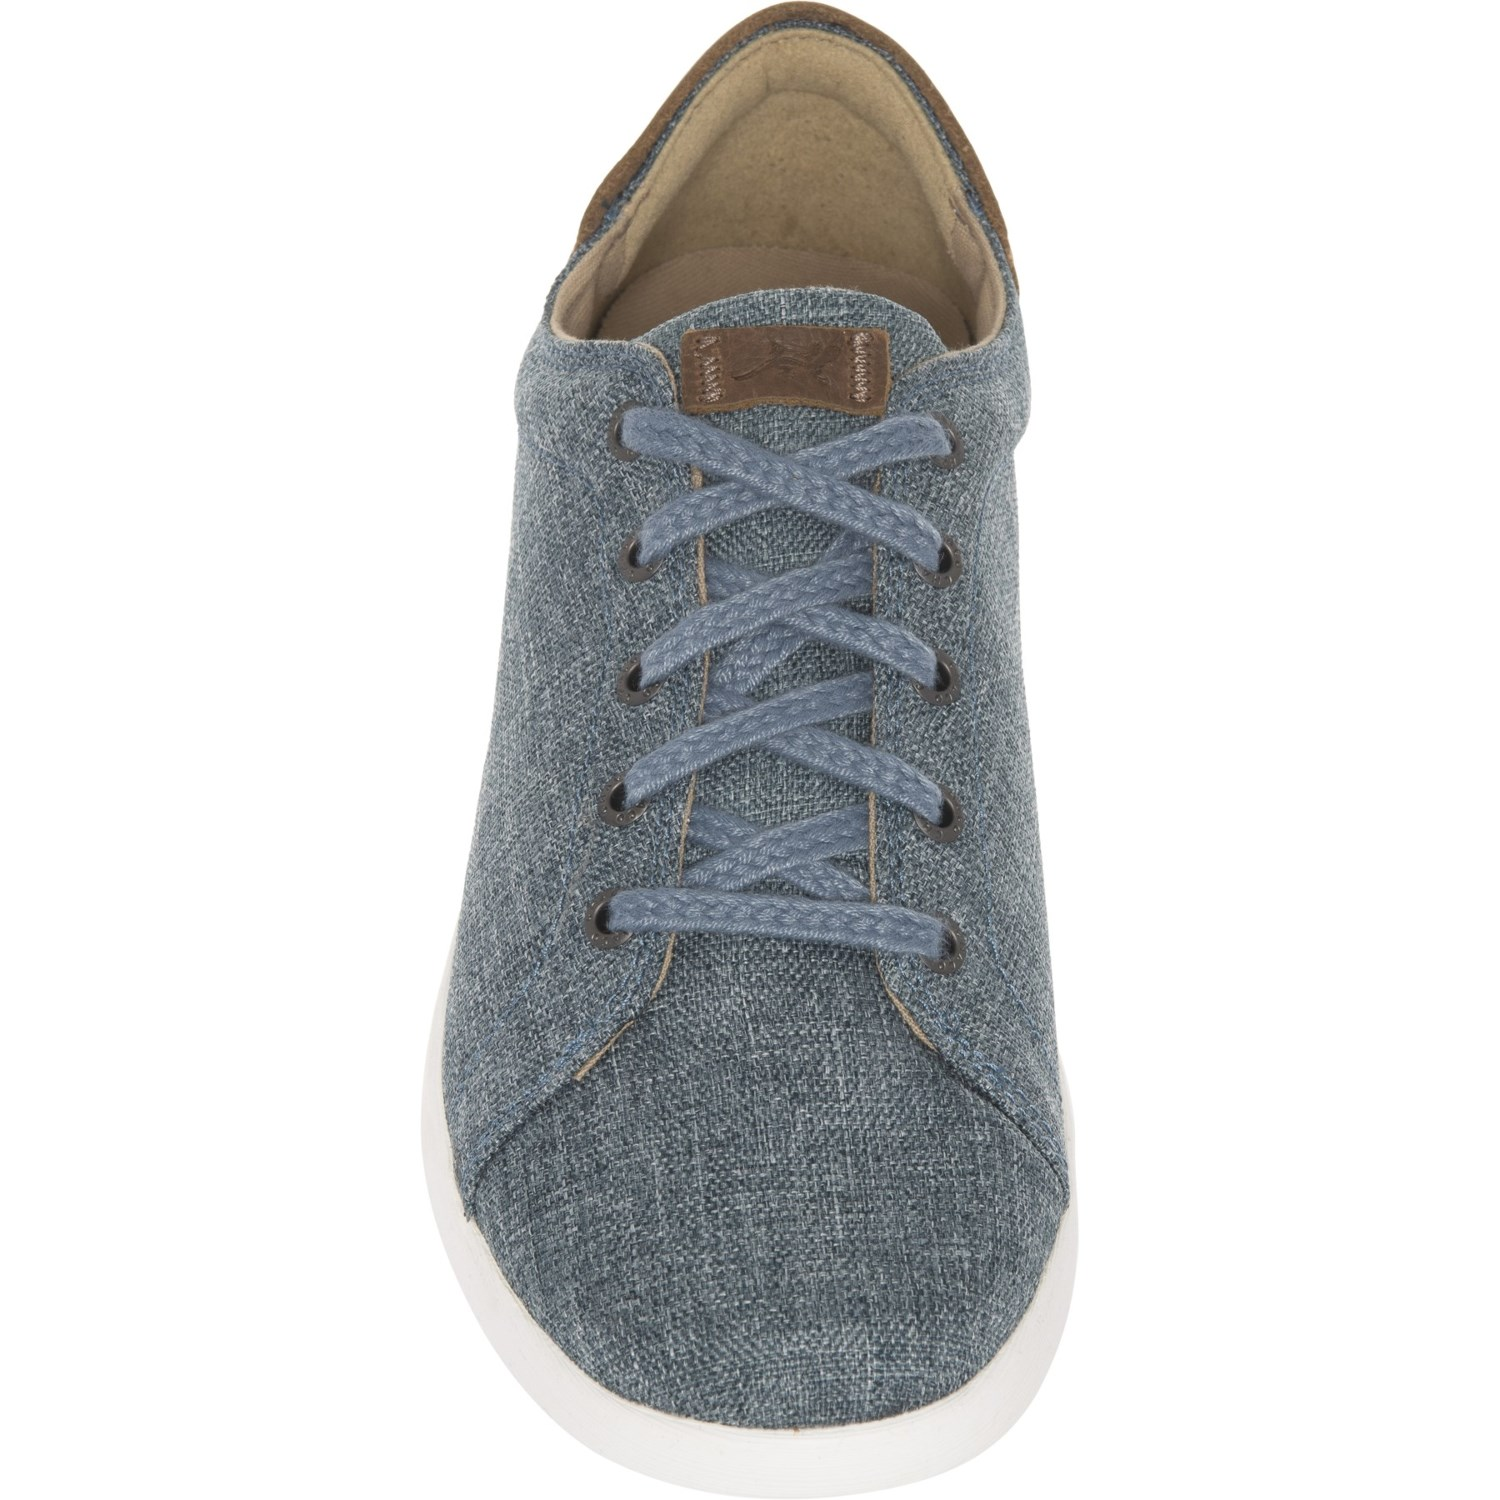 7034b84c38ad Chaco Ionia Lace Sneakers (For Women) - Save 44%